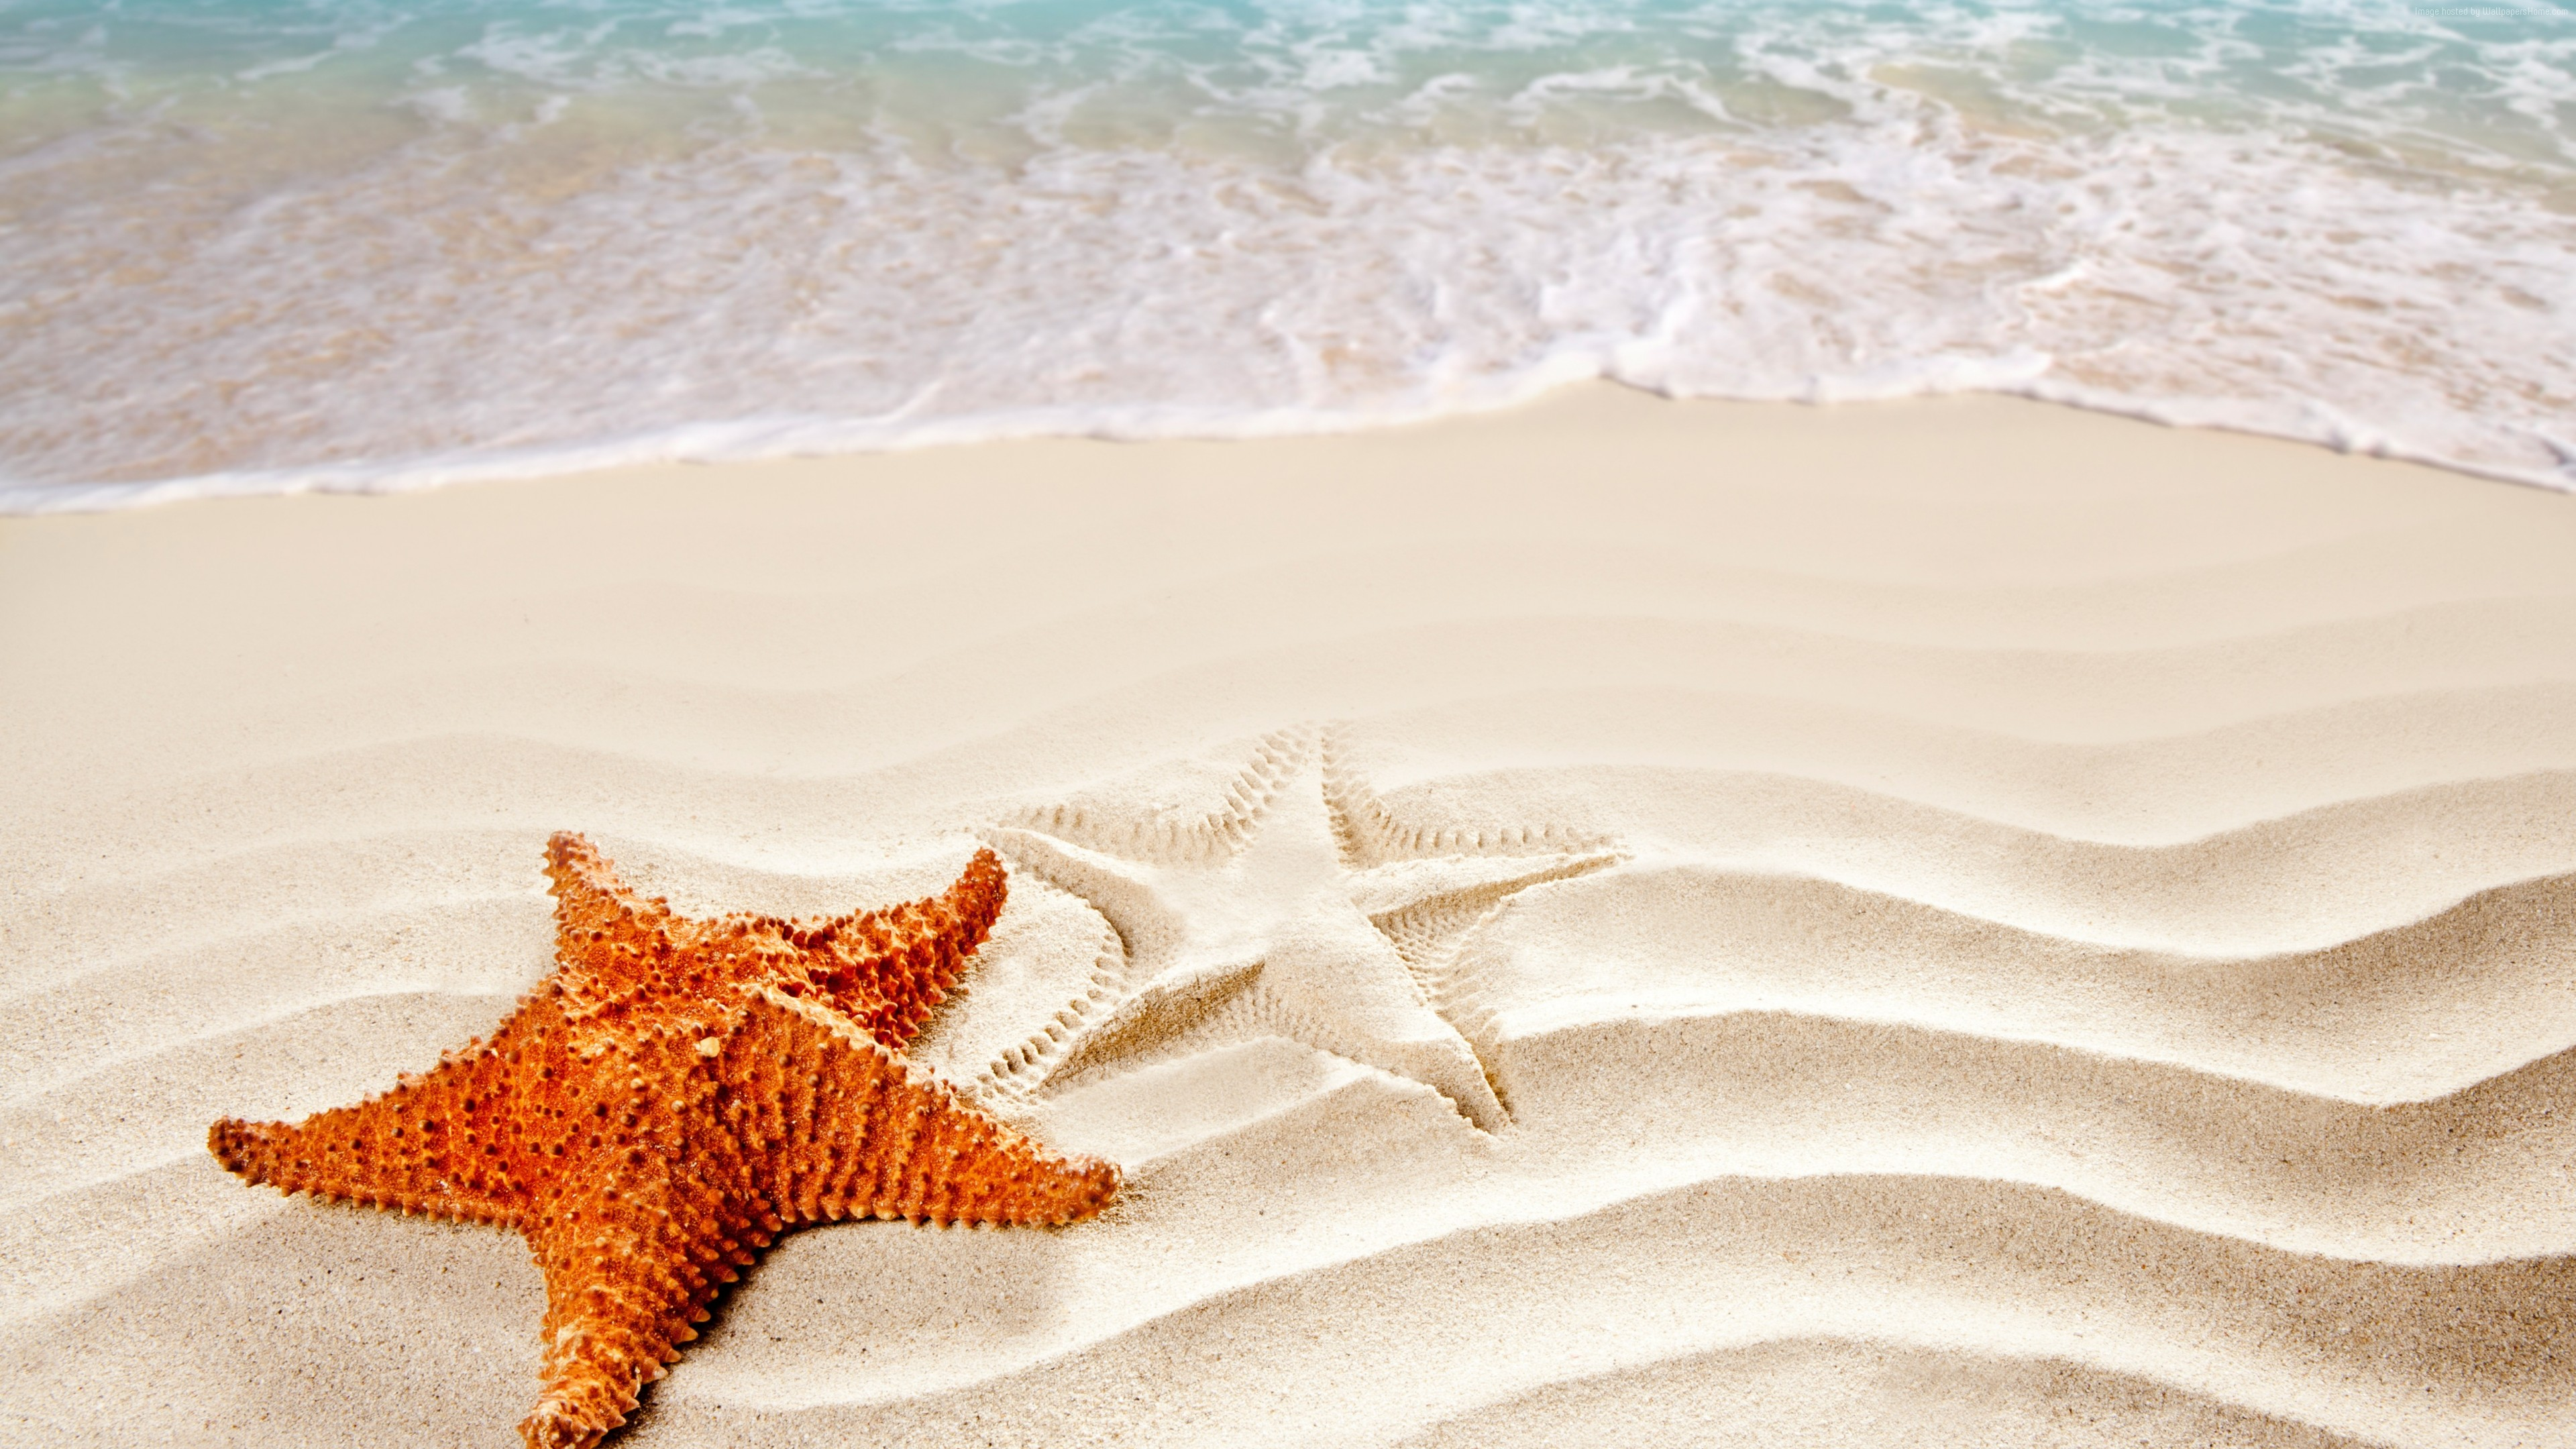 Wallpaper Sea, 5k, 4k wallpaper, ocean, starfish, shore, Best Beaches in the World, Travel